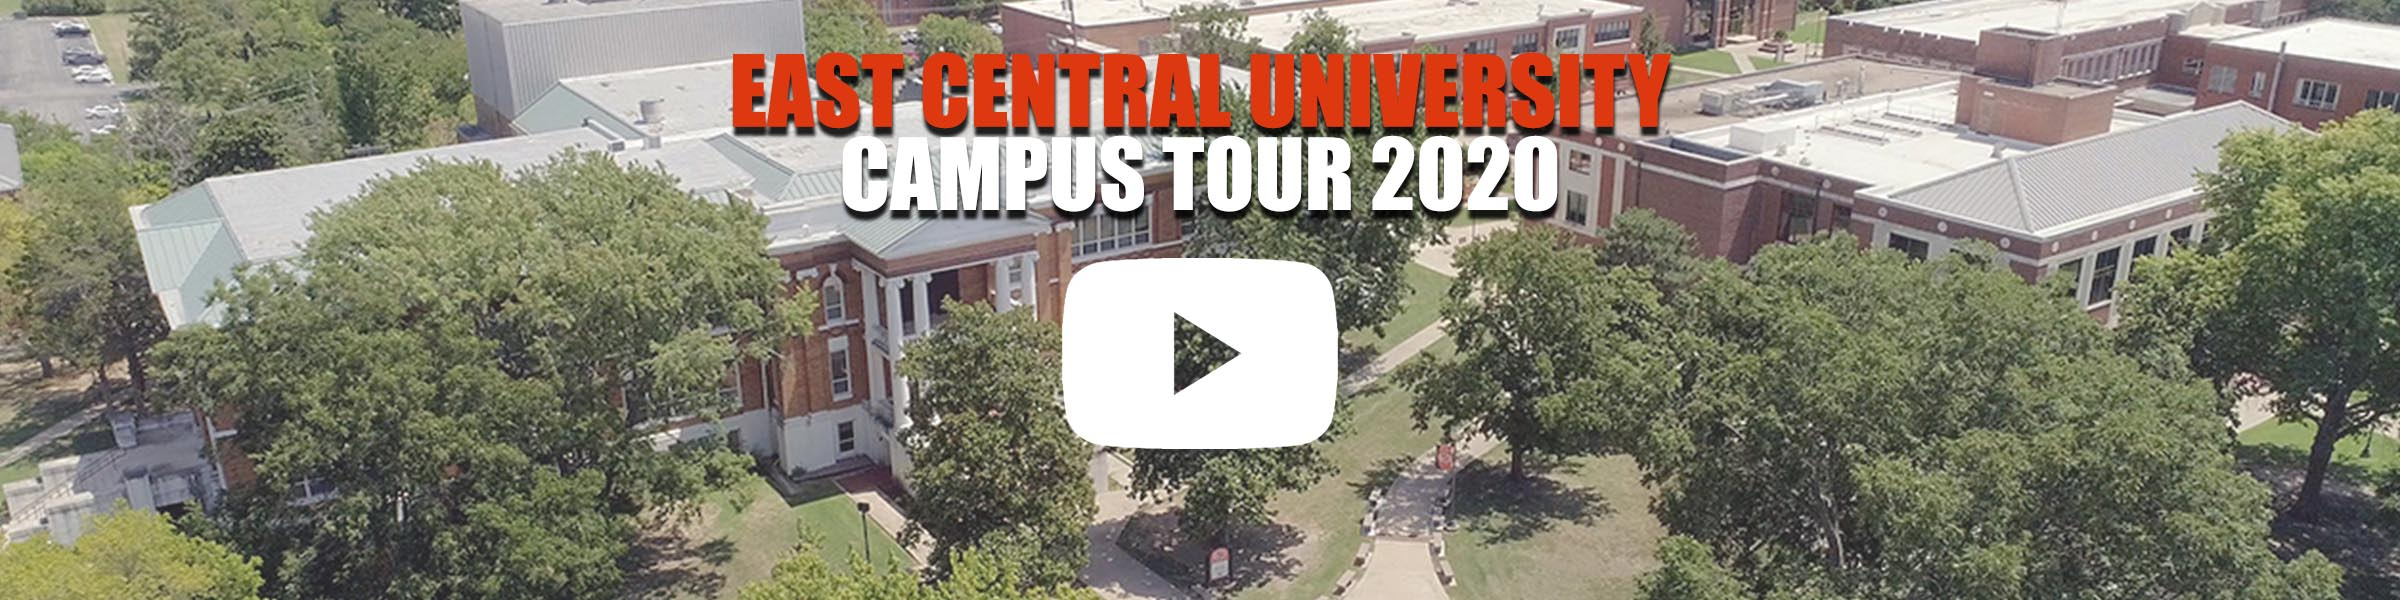 Campus tour header